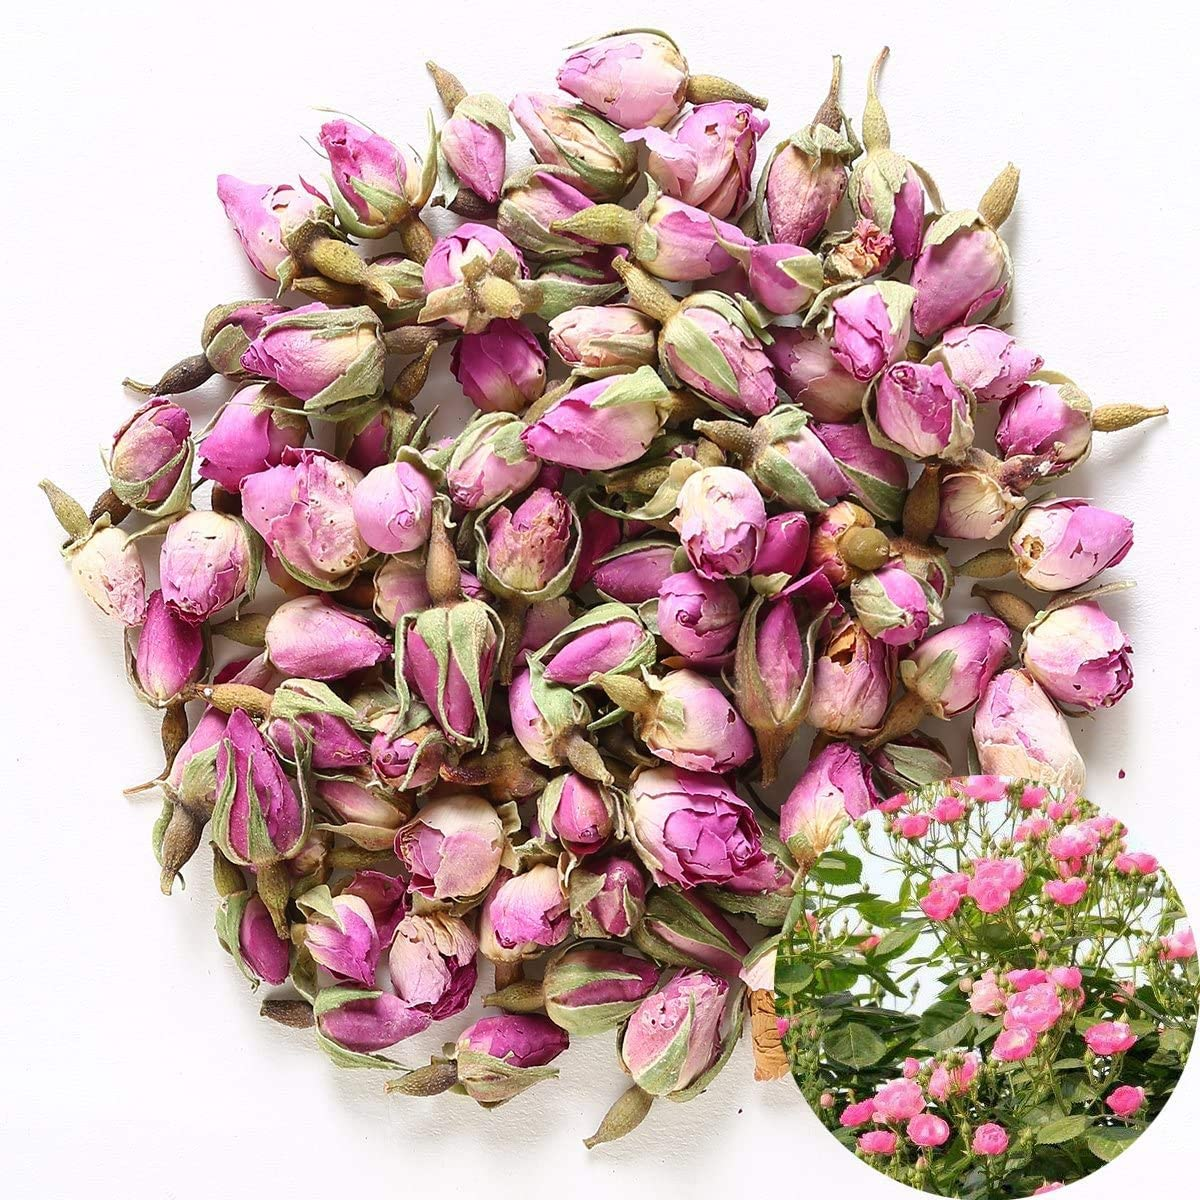 TooGet Fragrant Natural Pink Rose Buds Rose Petals Pure Dried Rosa Damascena Wholesale, Culinary Food Grade - 4 OZ